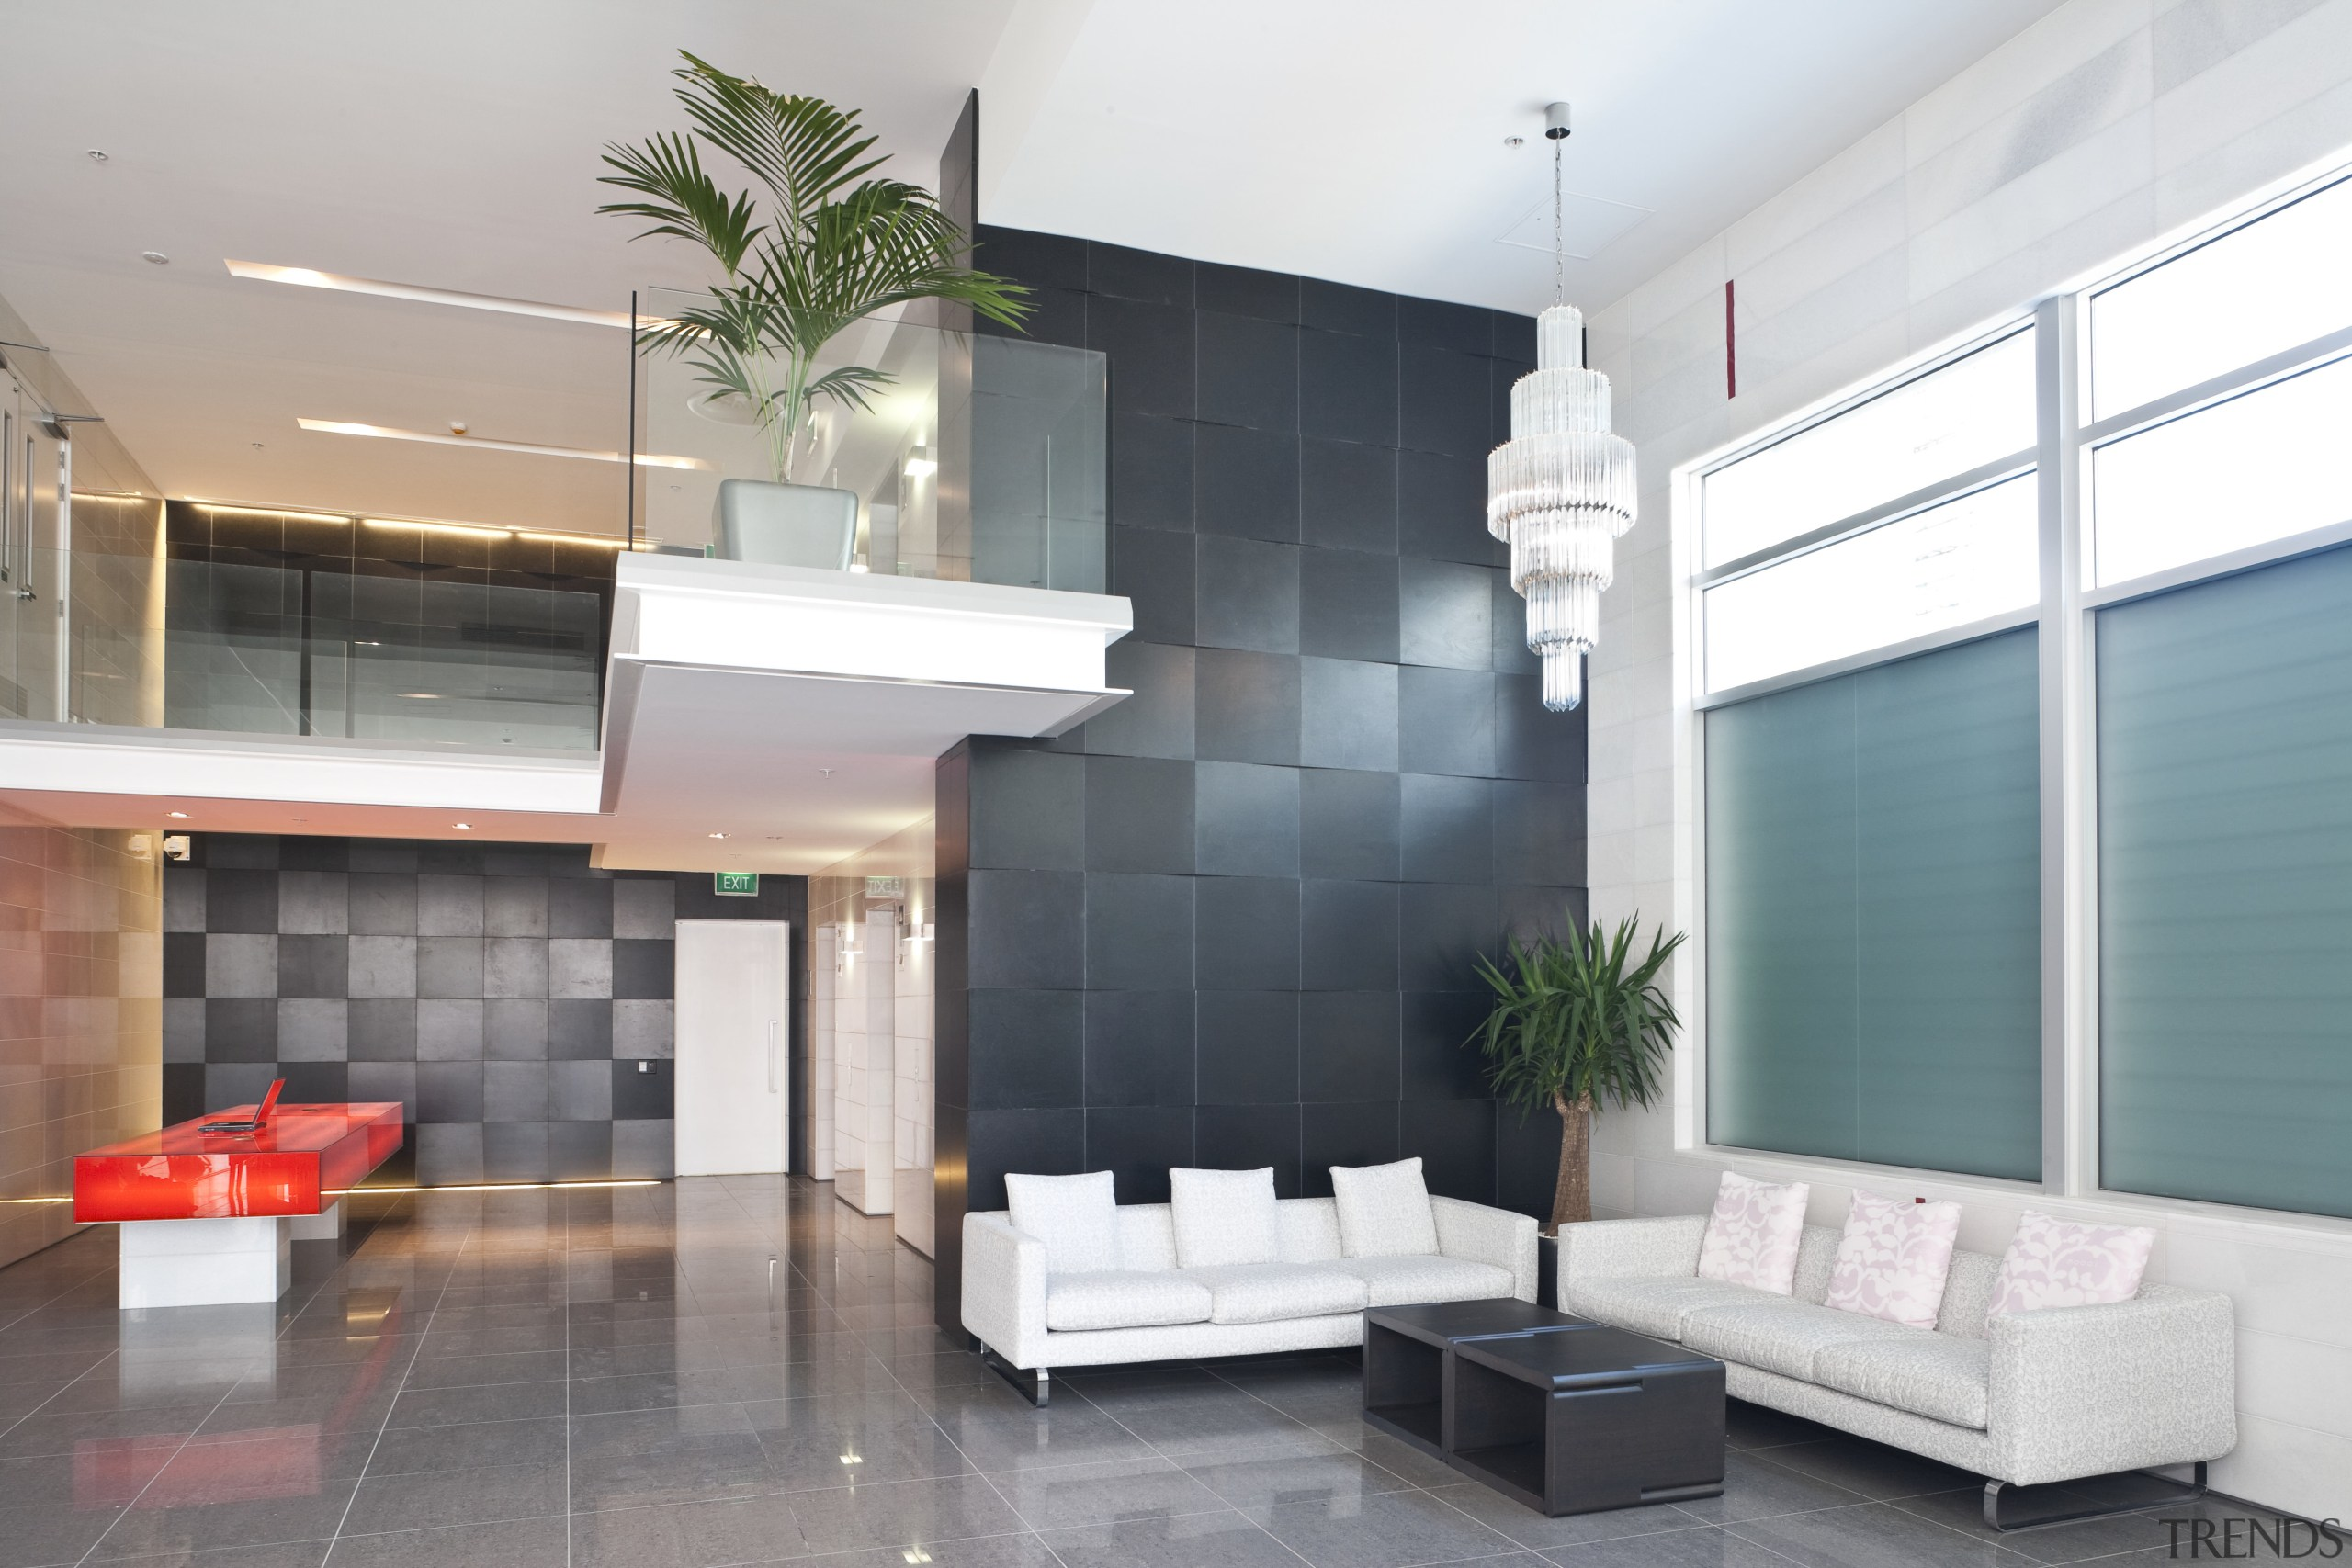 View of the Club Tower offices in Christchurch, interior design, living room, lobby, white